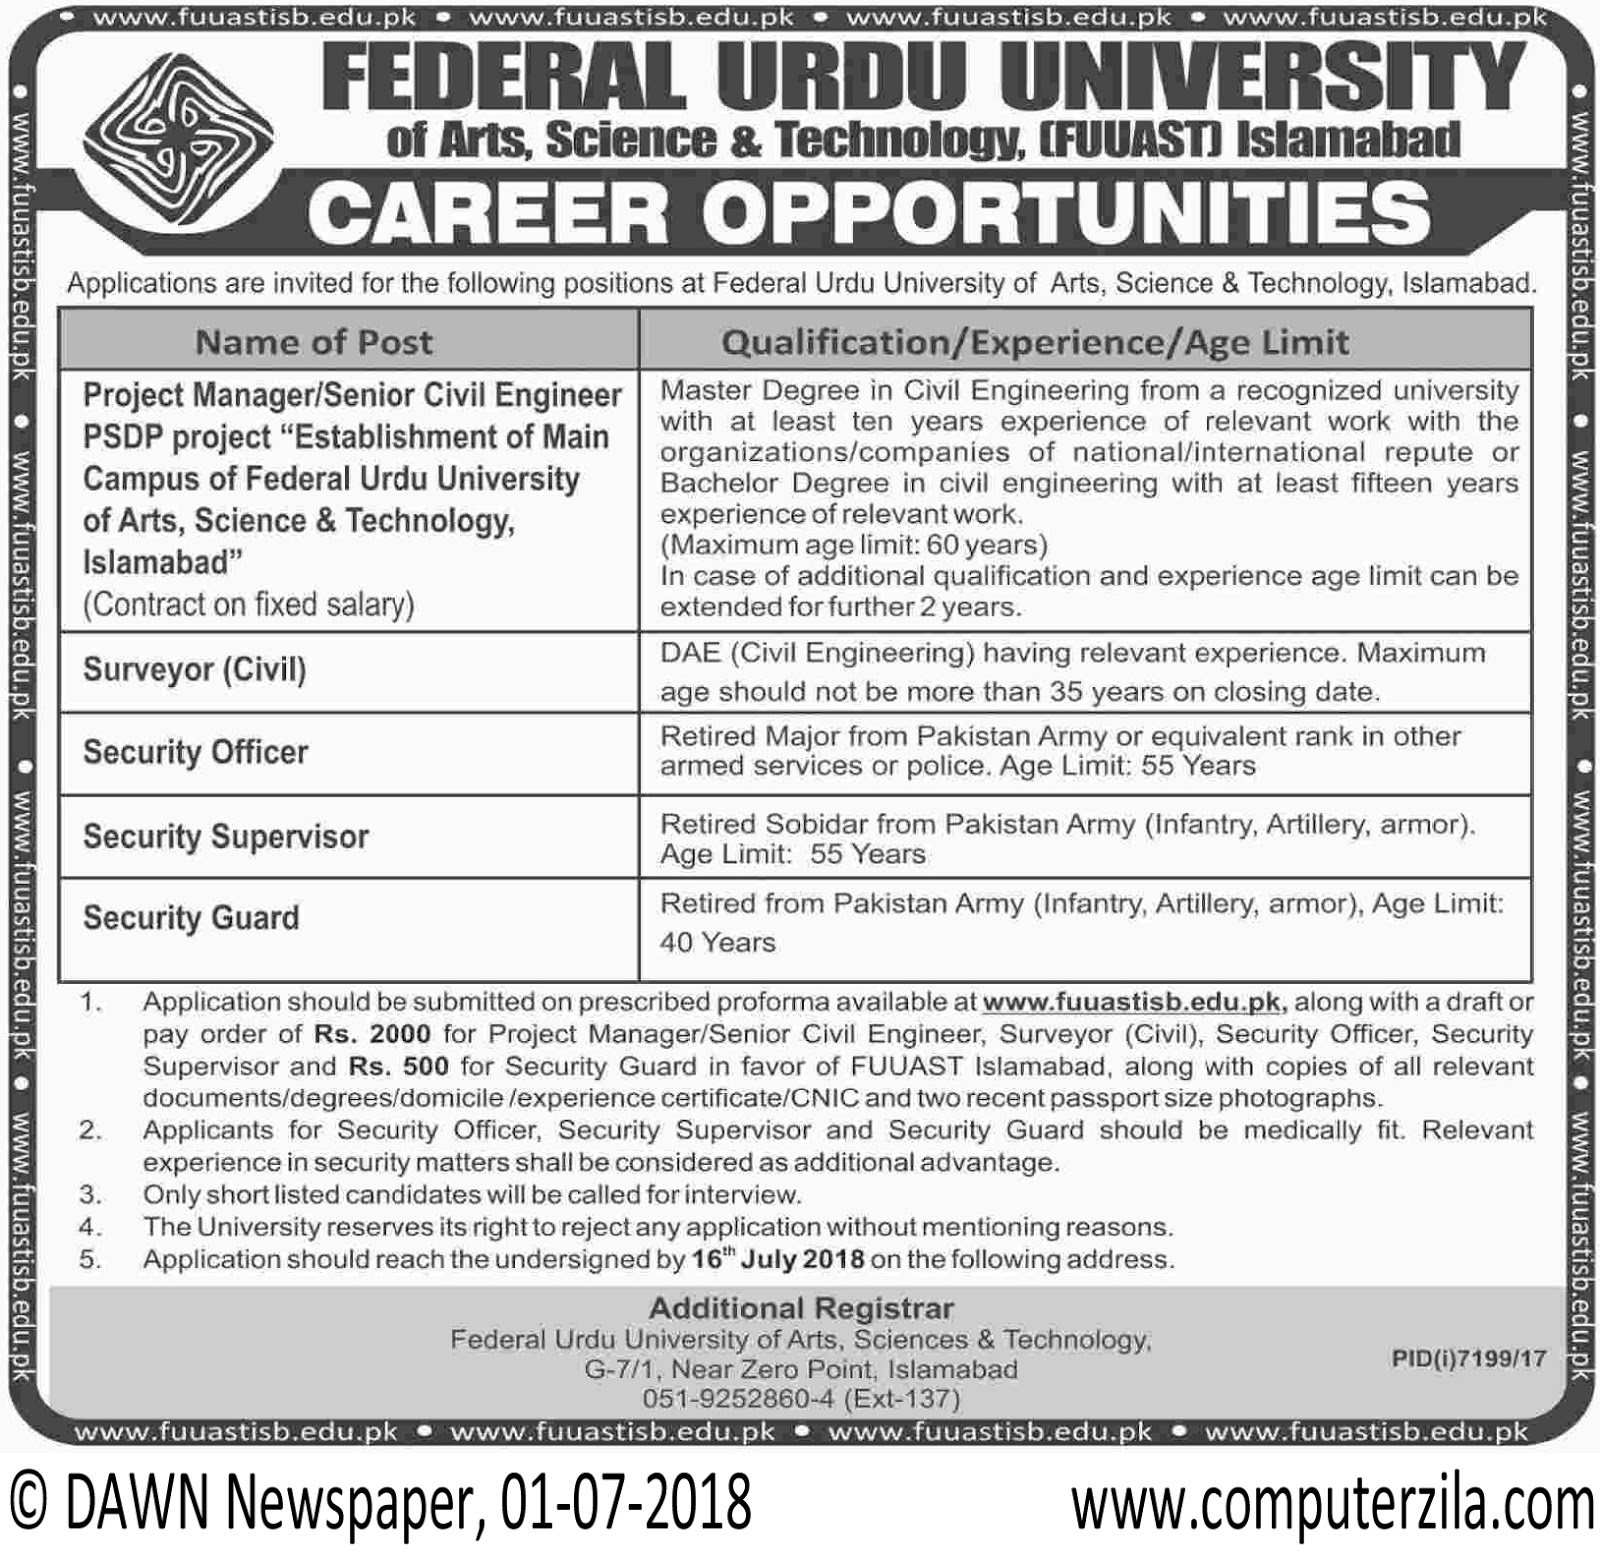 Career Opportunities at Federal Urdu University of Science & Technology